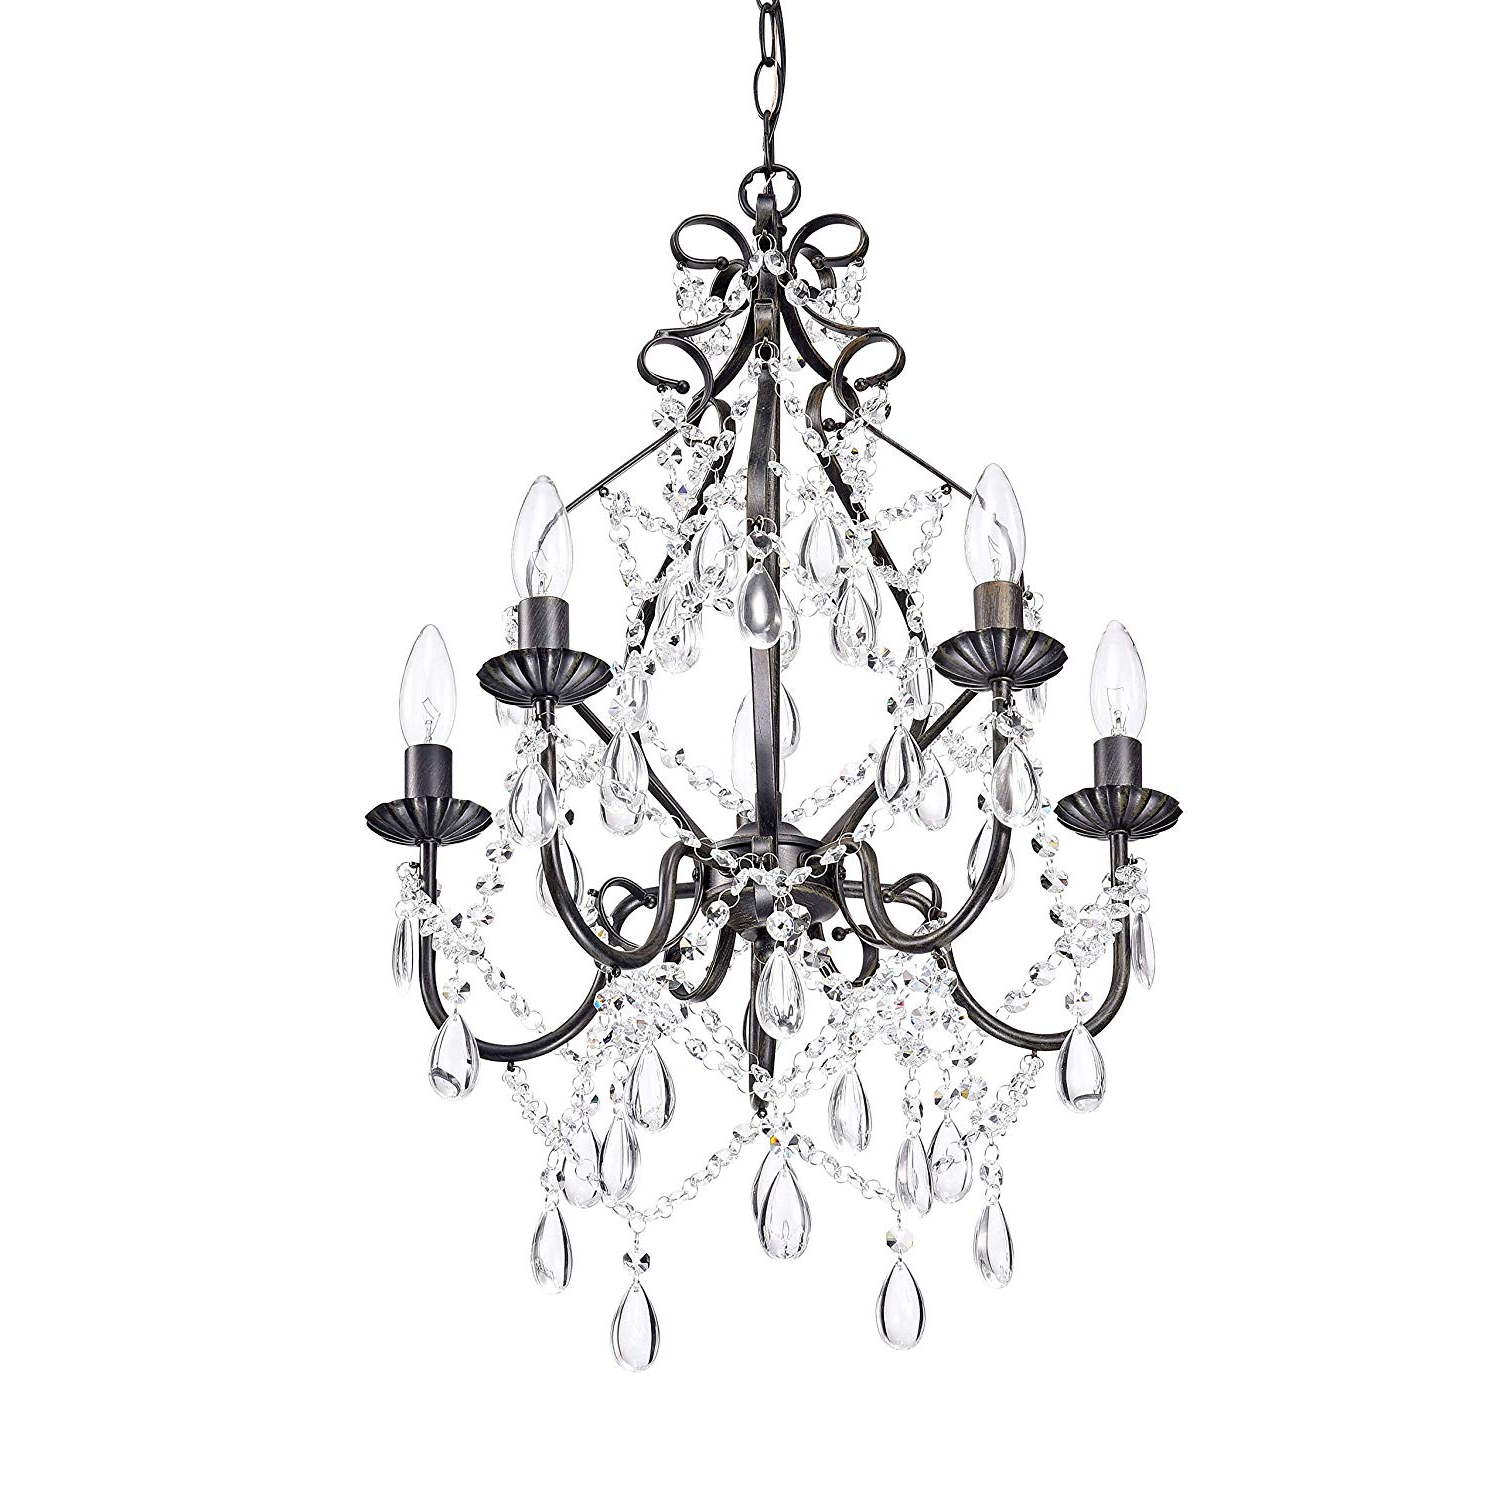 Newest Florentina 5 Light Candle Style Chandeliers Within Bethany 5 Light Iron And Crystal Candle Chandelier (View 23 of 25)